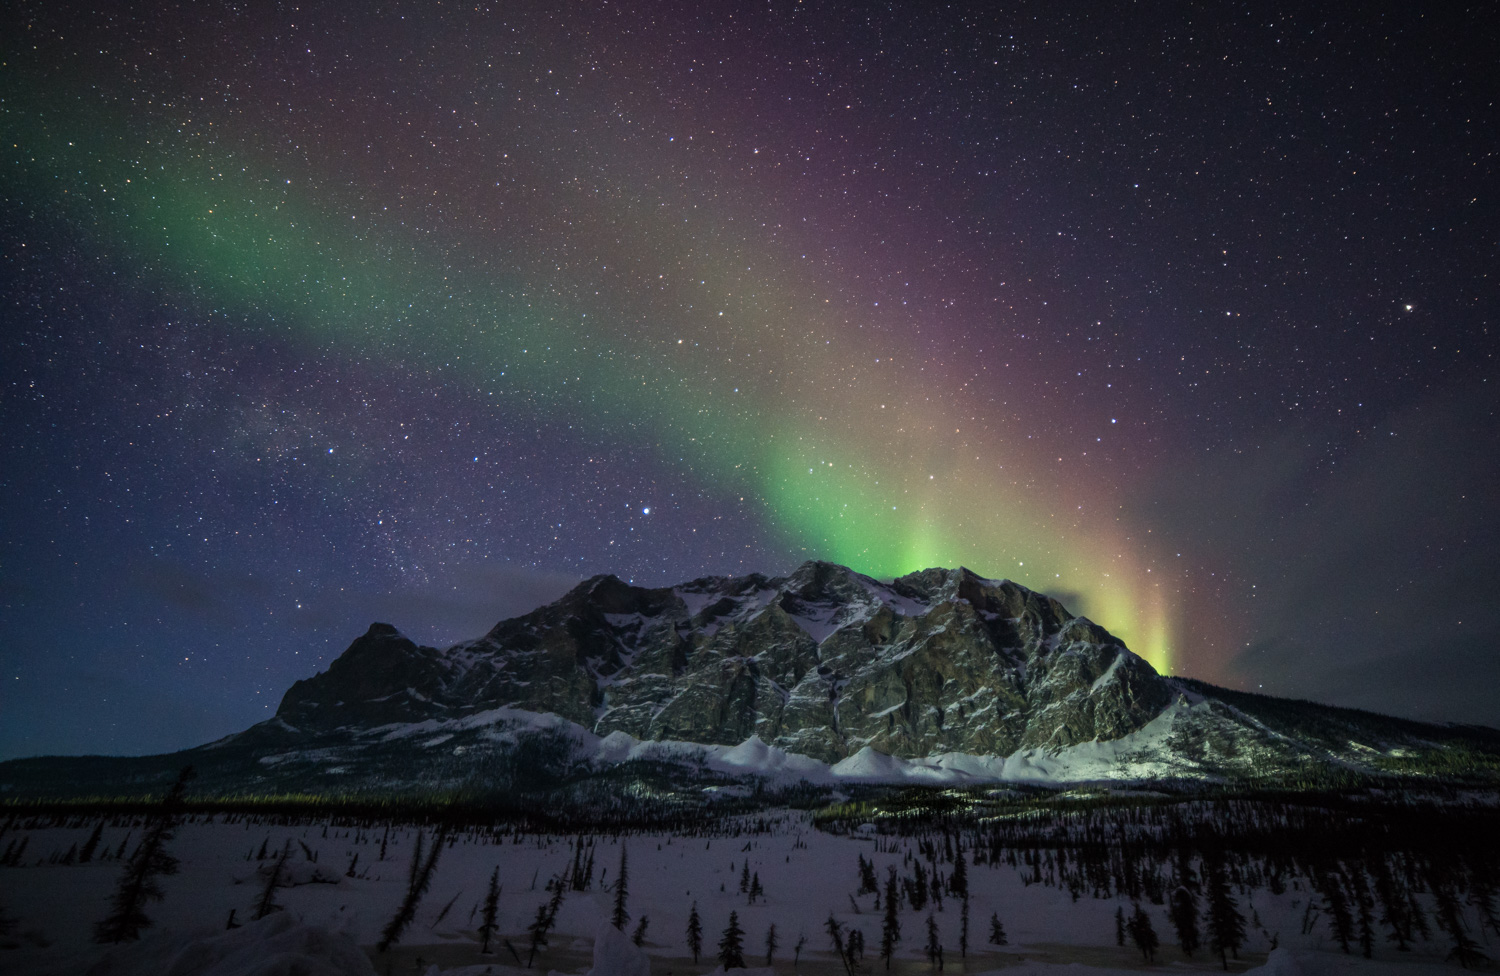 northern lights over a mountain - Five (More) Uncomfortable Truths About Photography